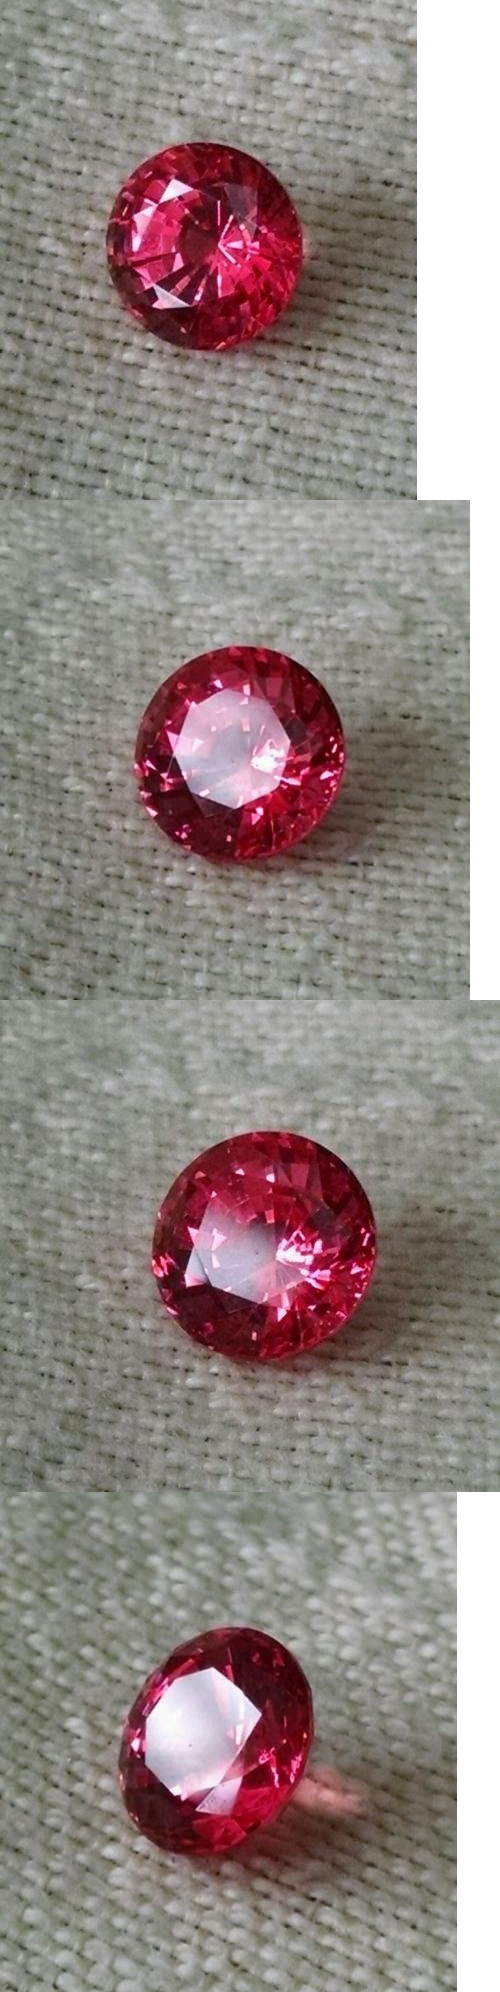 739f6b05ed6 Lab-Created Sapphires 122958  8Mm Round Chatham Tm Brand Synthetic Flux Lab  Created Padparadscha Gemstone BUY IT NOW ONLY   500.0